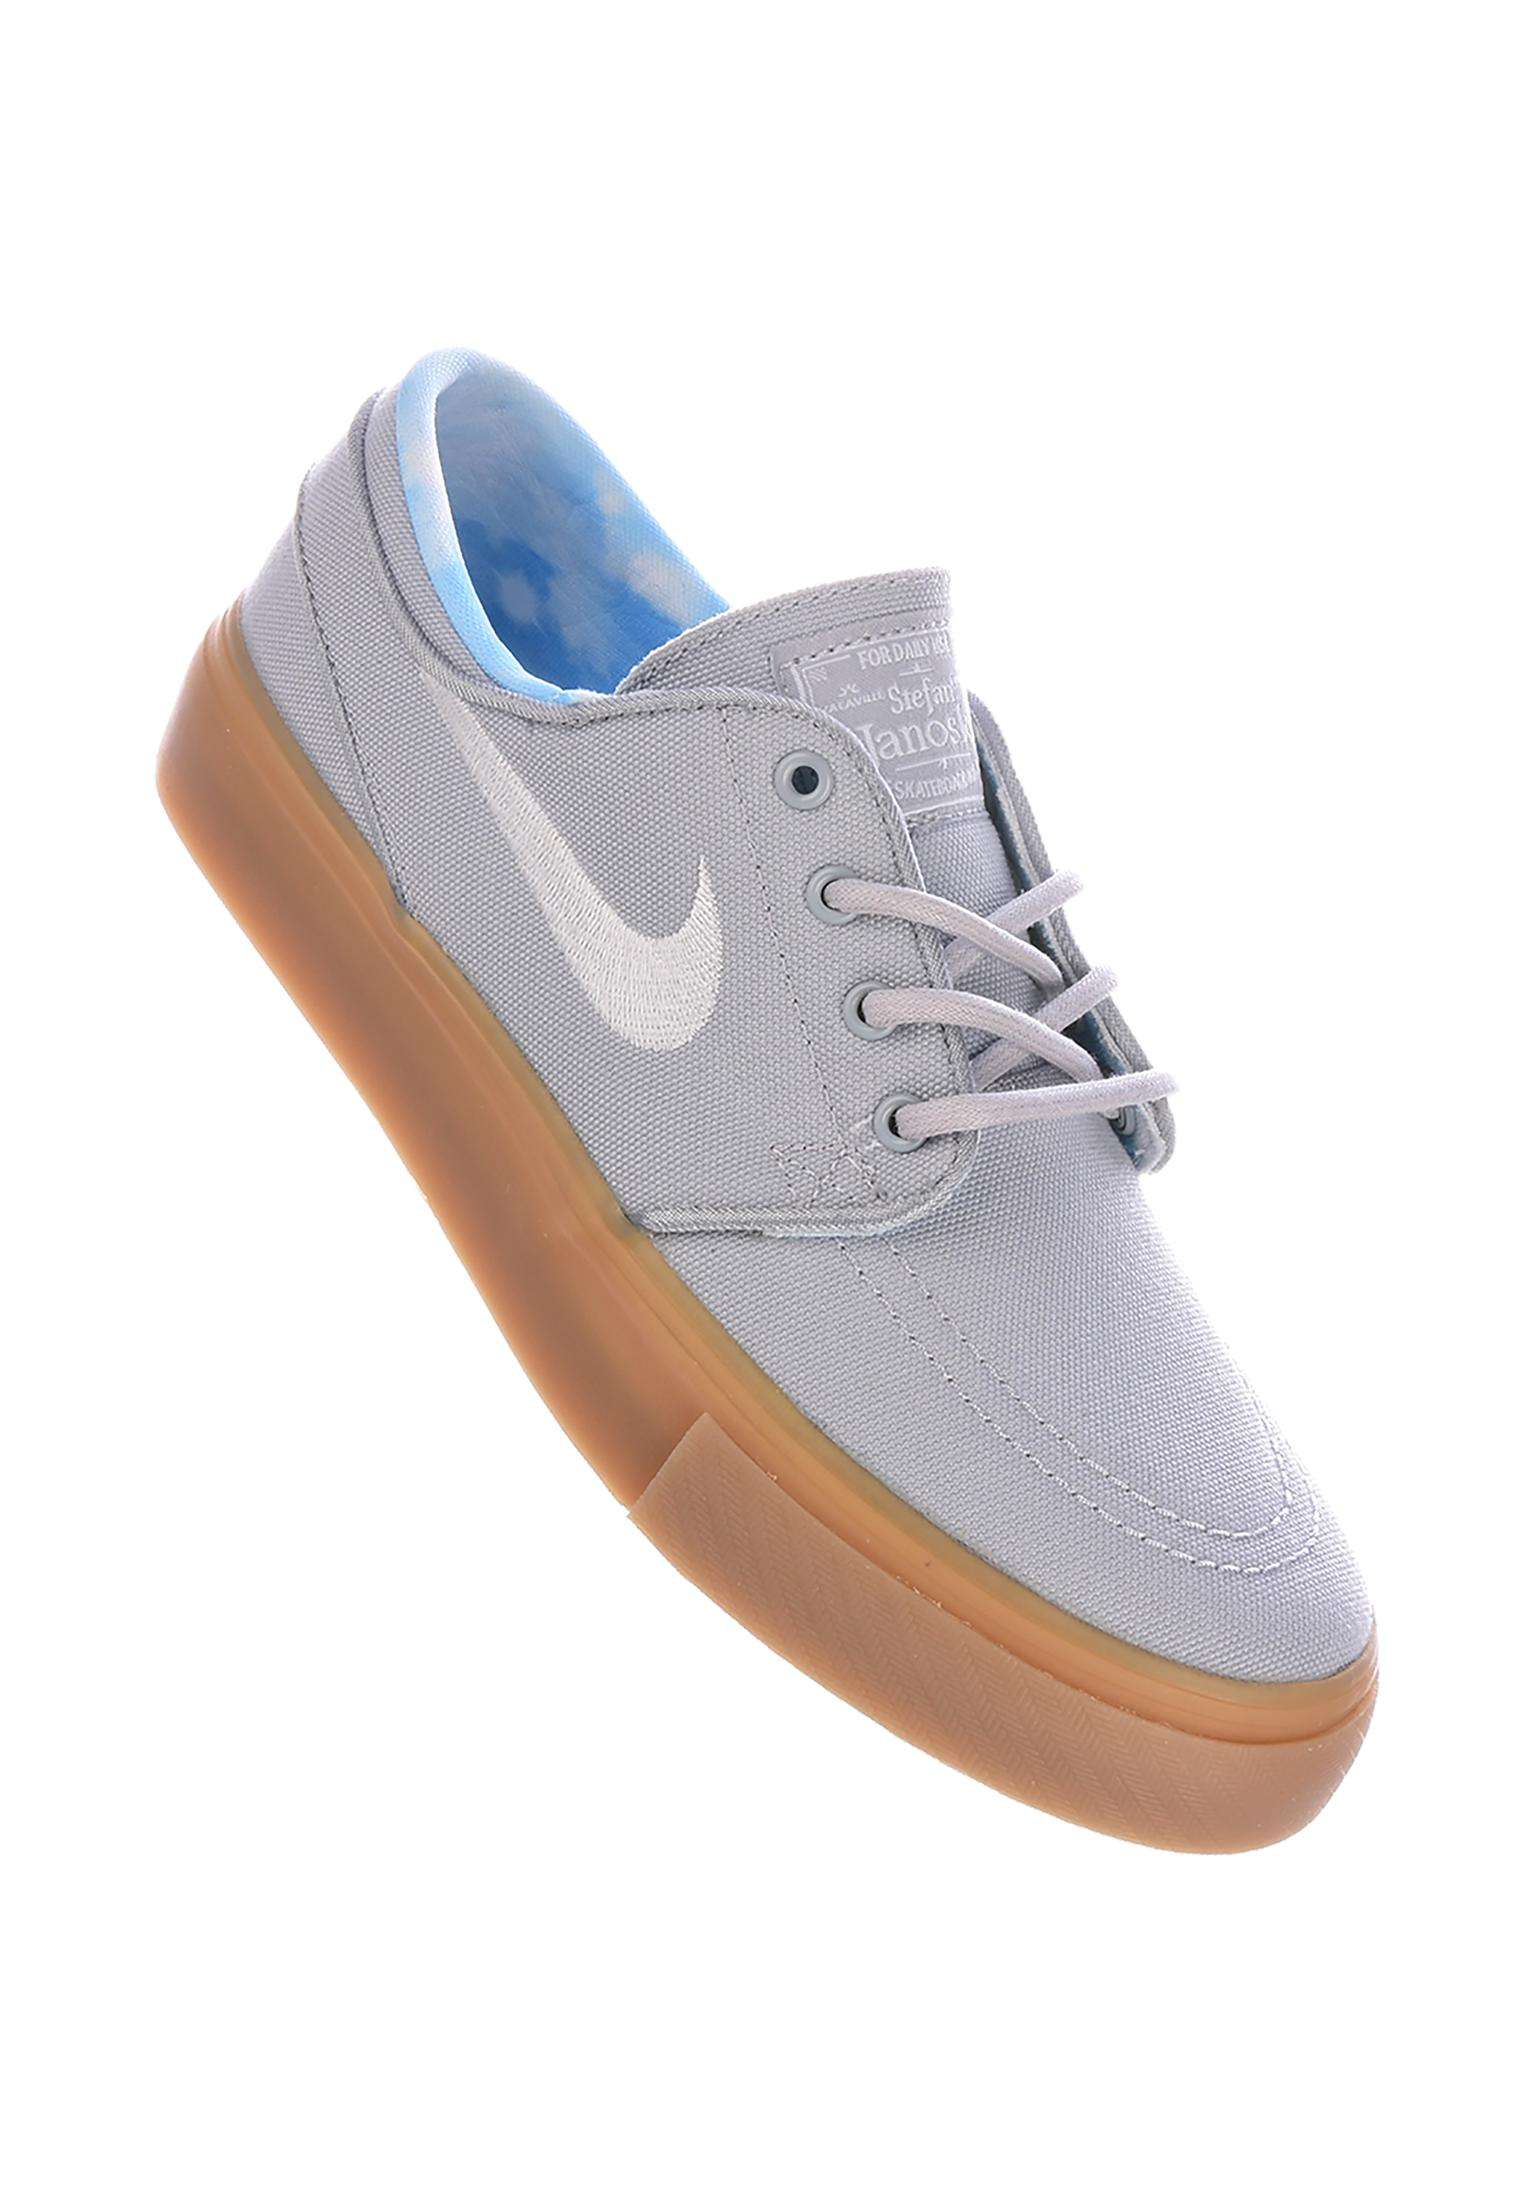 new concept 905a0 63098 Zoom Stefan Janoski Canvas GS Nike SB All Shoes in wolfgrey-white-gum for  Kids   Titus